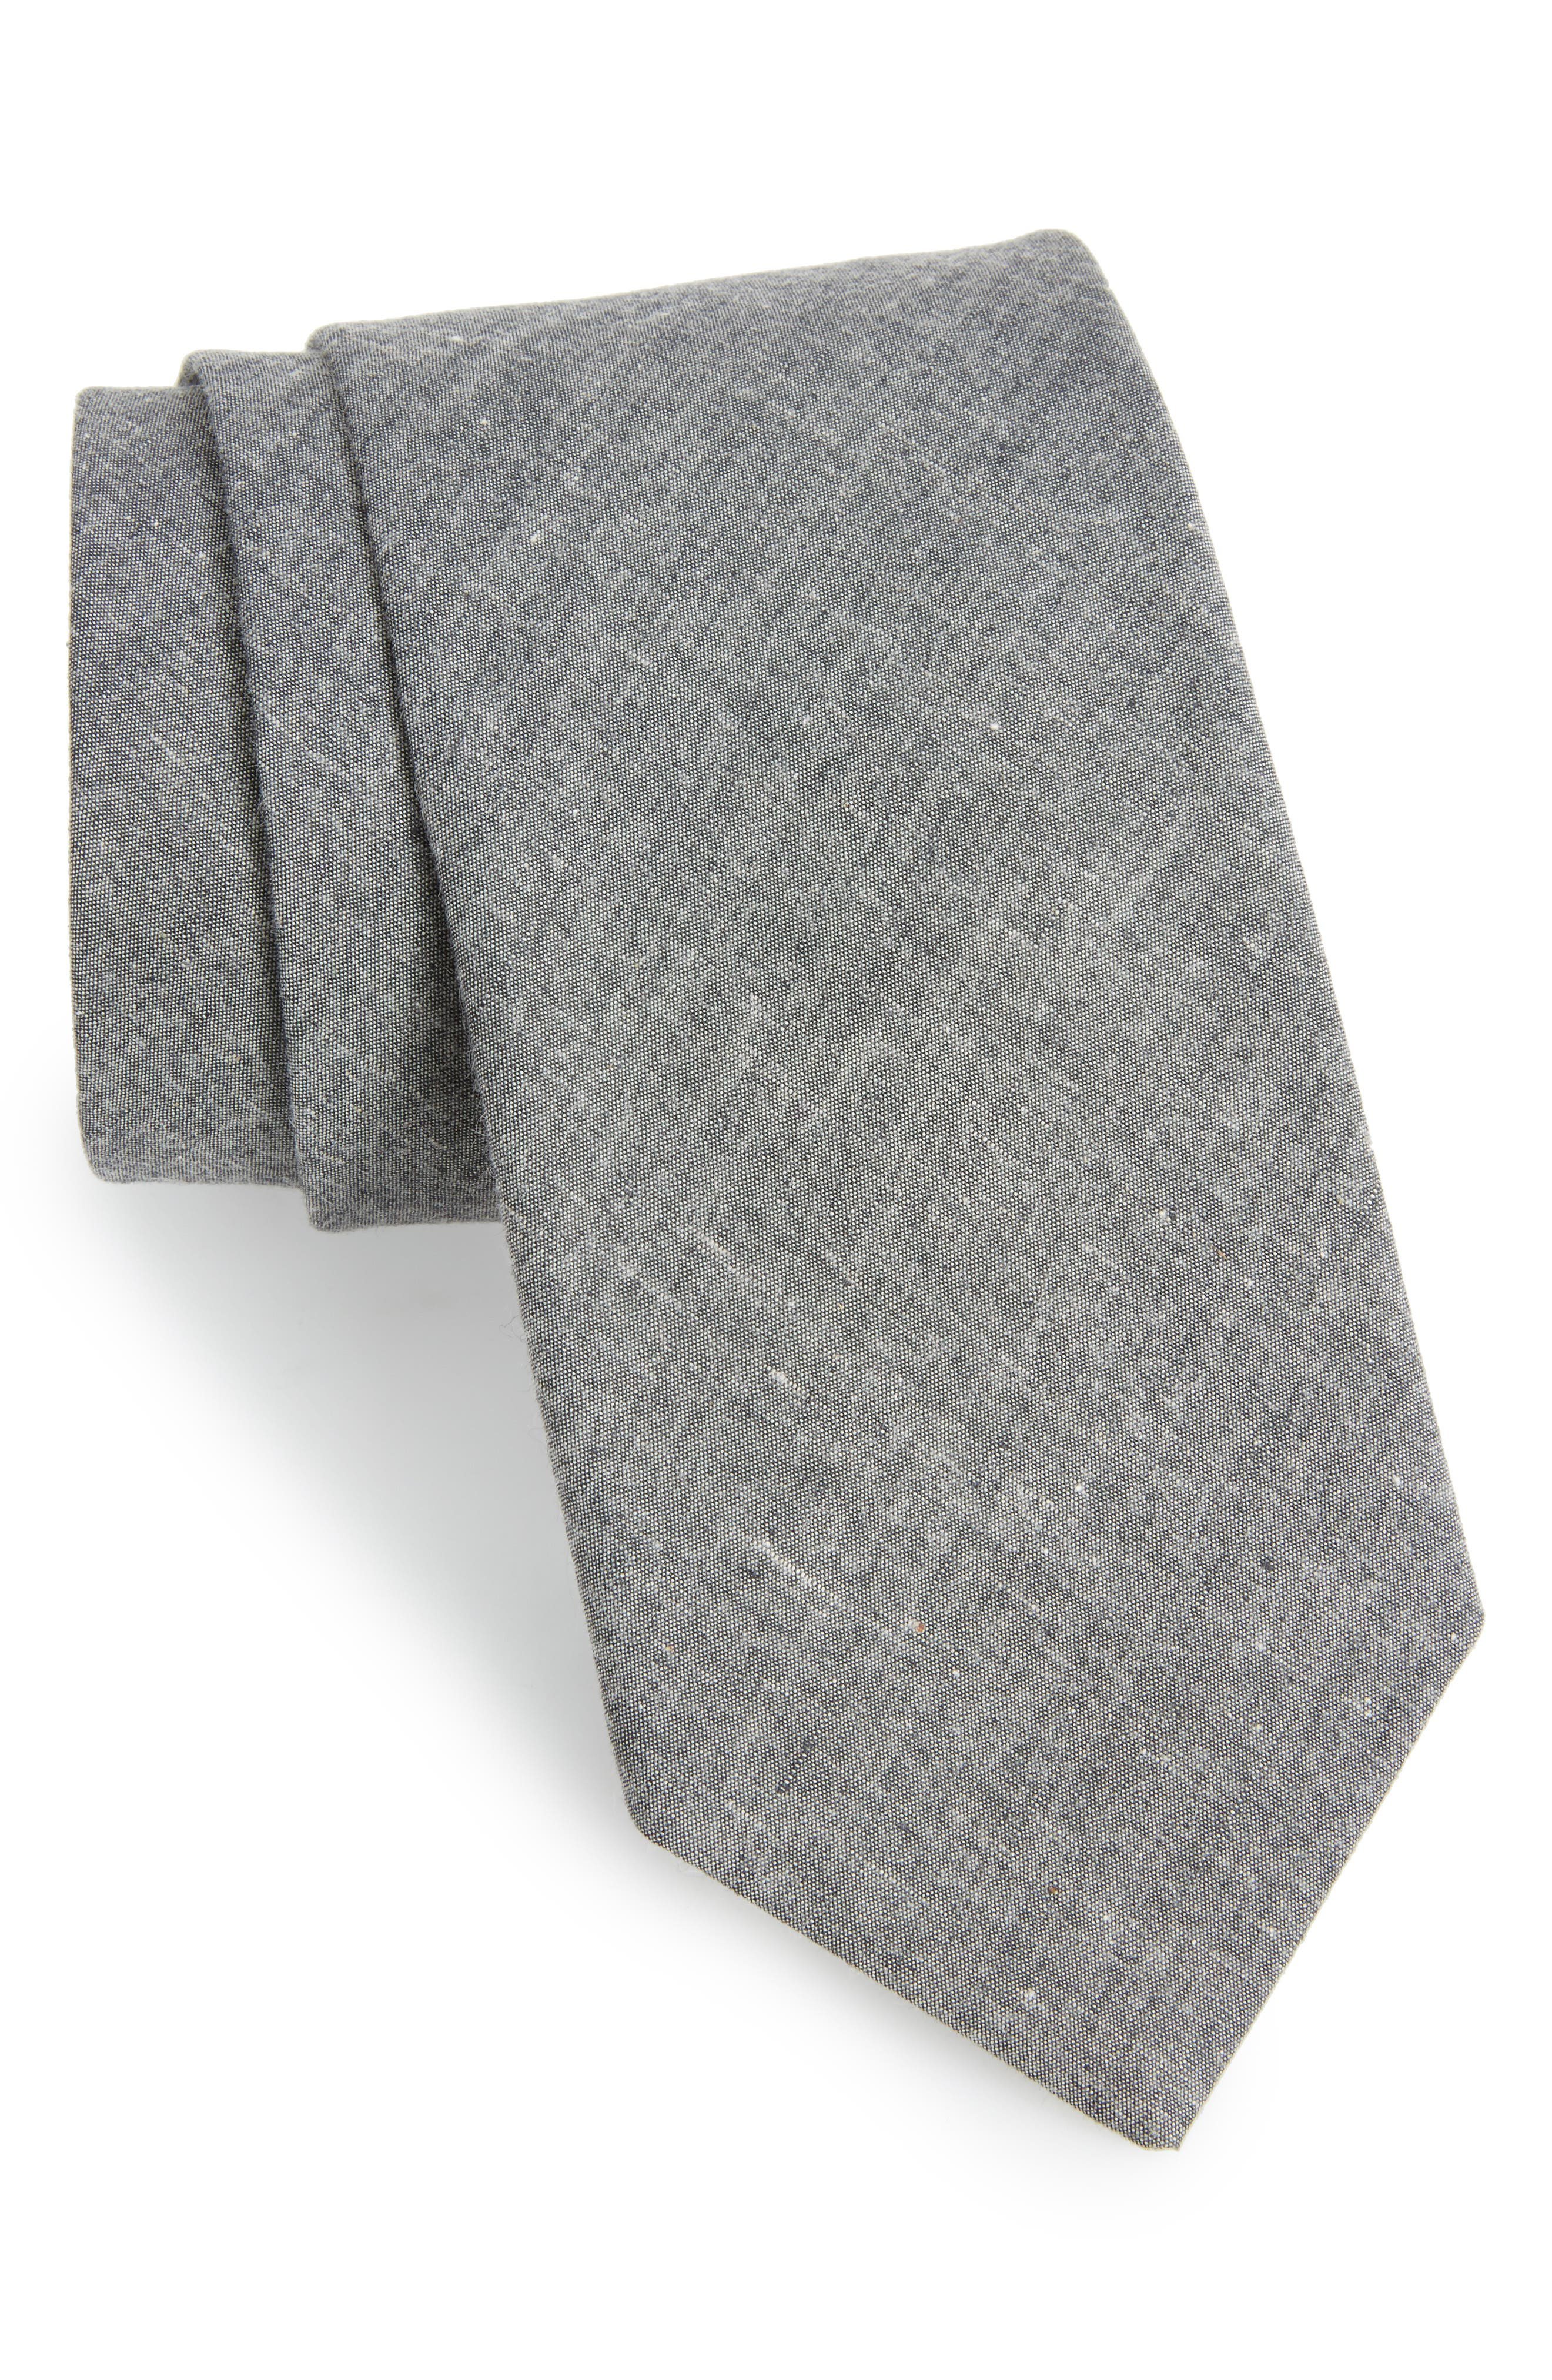 Chambray Cotton Tie,                             Main thumbnail 1, color,